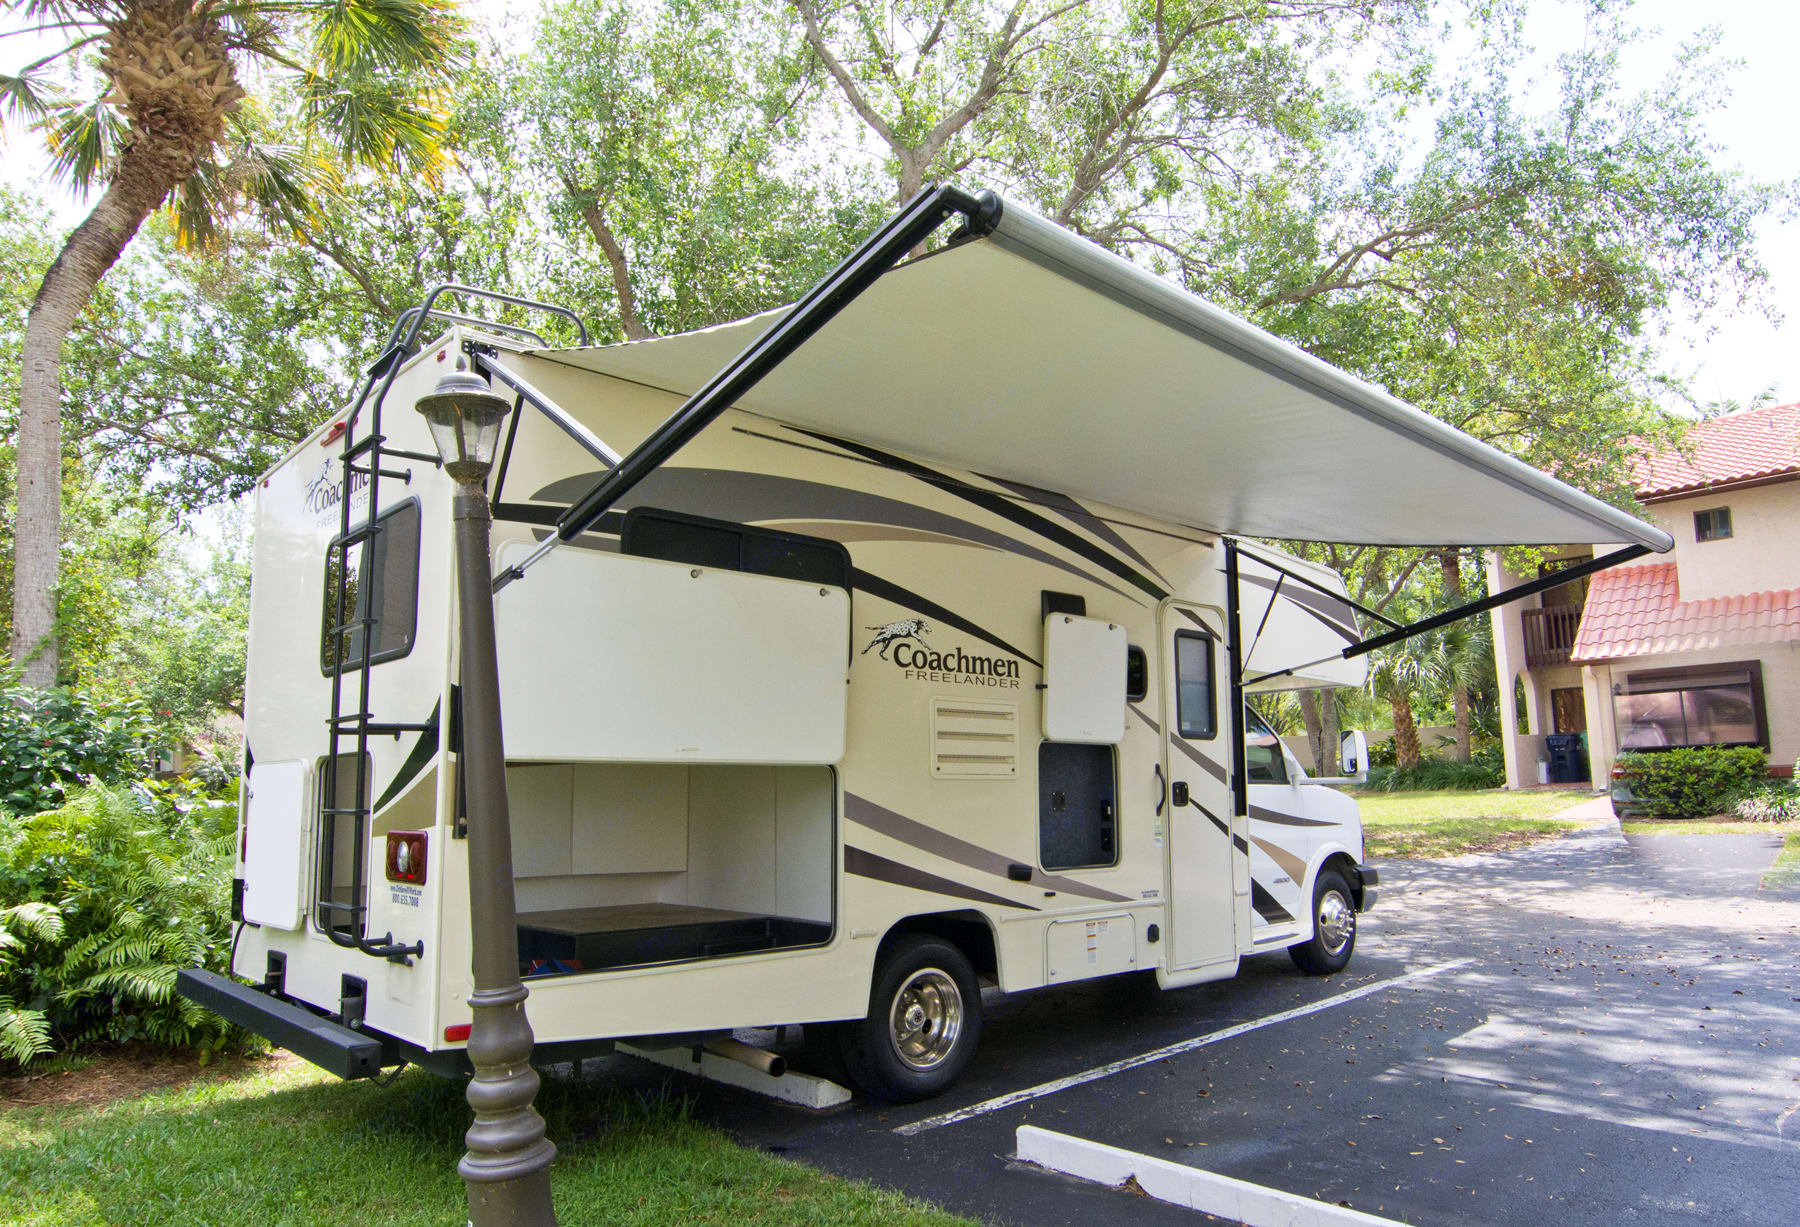 Open electric awning to watch to star gaze or barbecue. ALL this storage space for camping gear, cycling gear, fishing gear and luggage. Two way entry to compartment.. Coachmen Freelander 2017